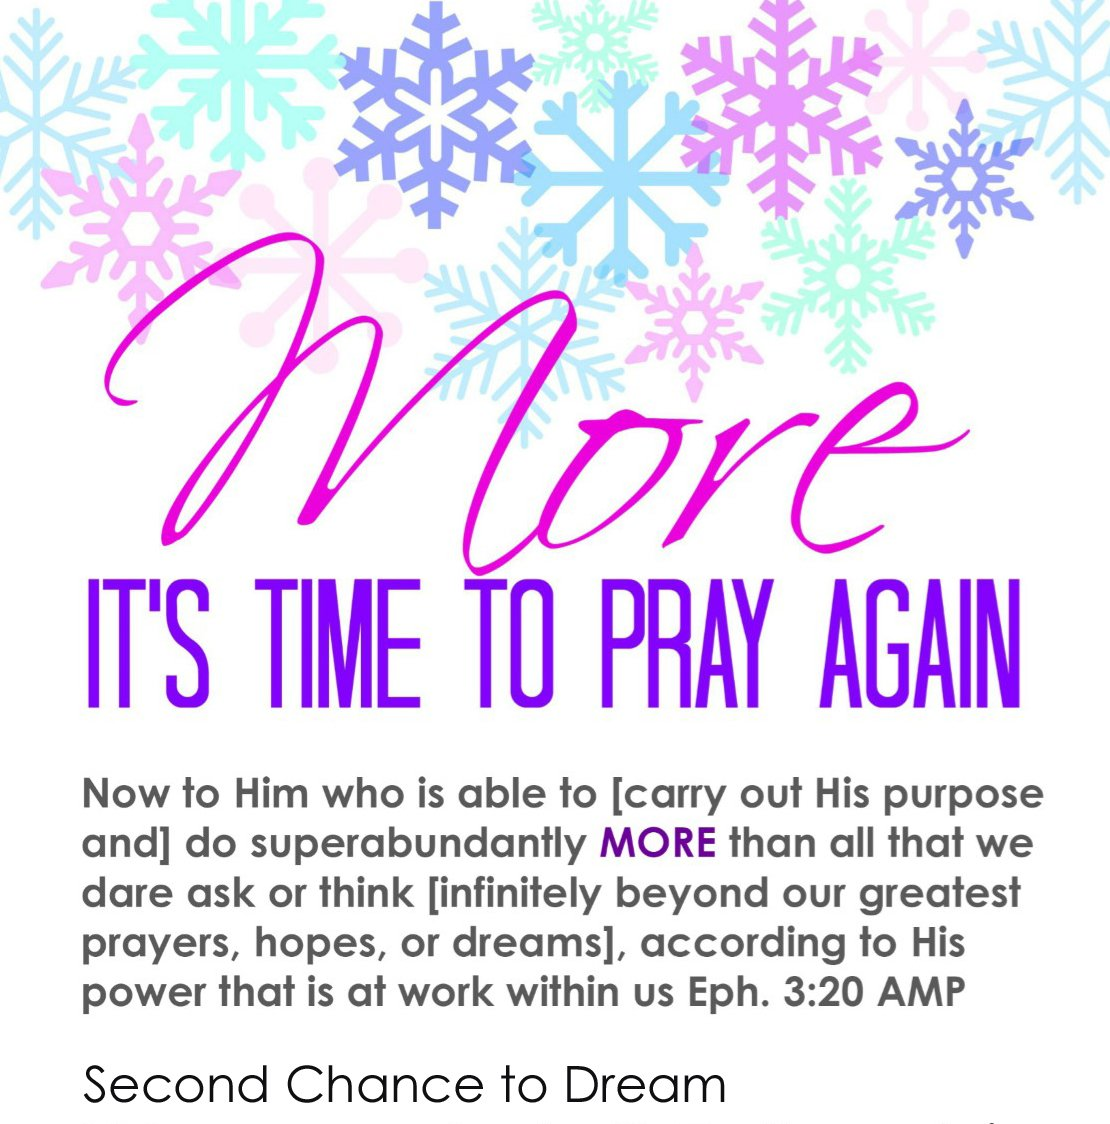 Second Chance to Dream: More It's Time to Pray Again